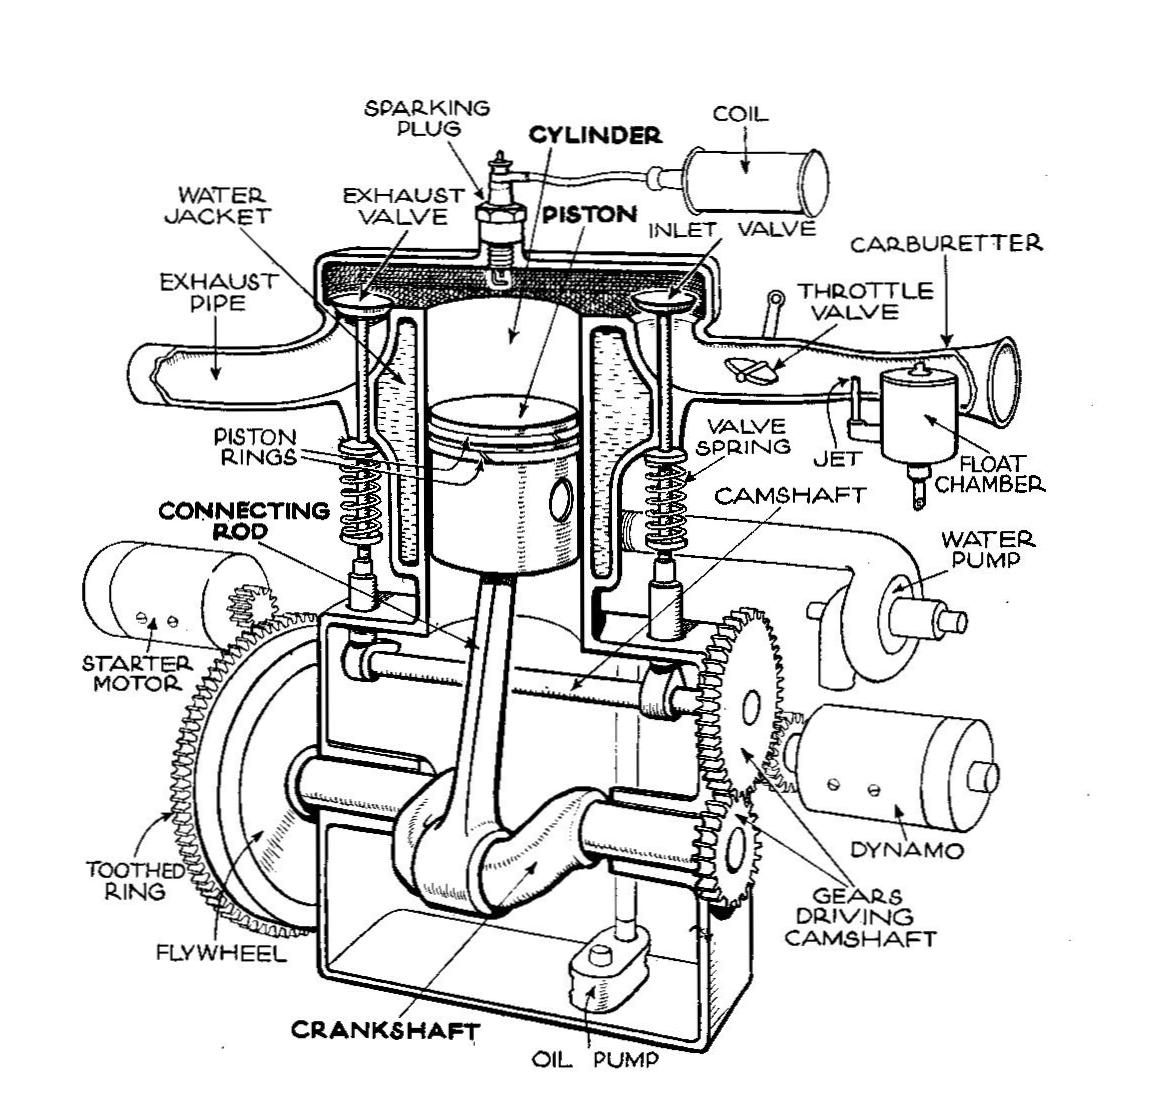 4 8 chevy engine diagram file:single-cylinder t-head engine (autocar handbook, 13th ... small chevy engine diagram